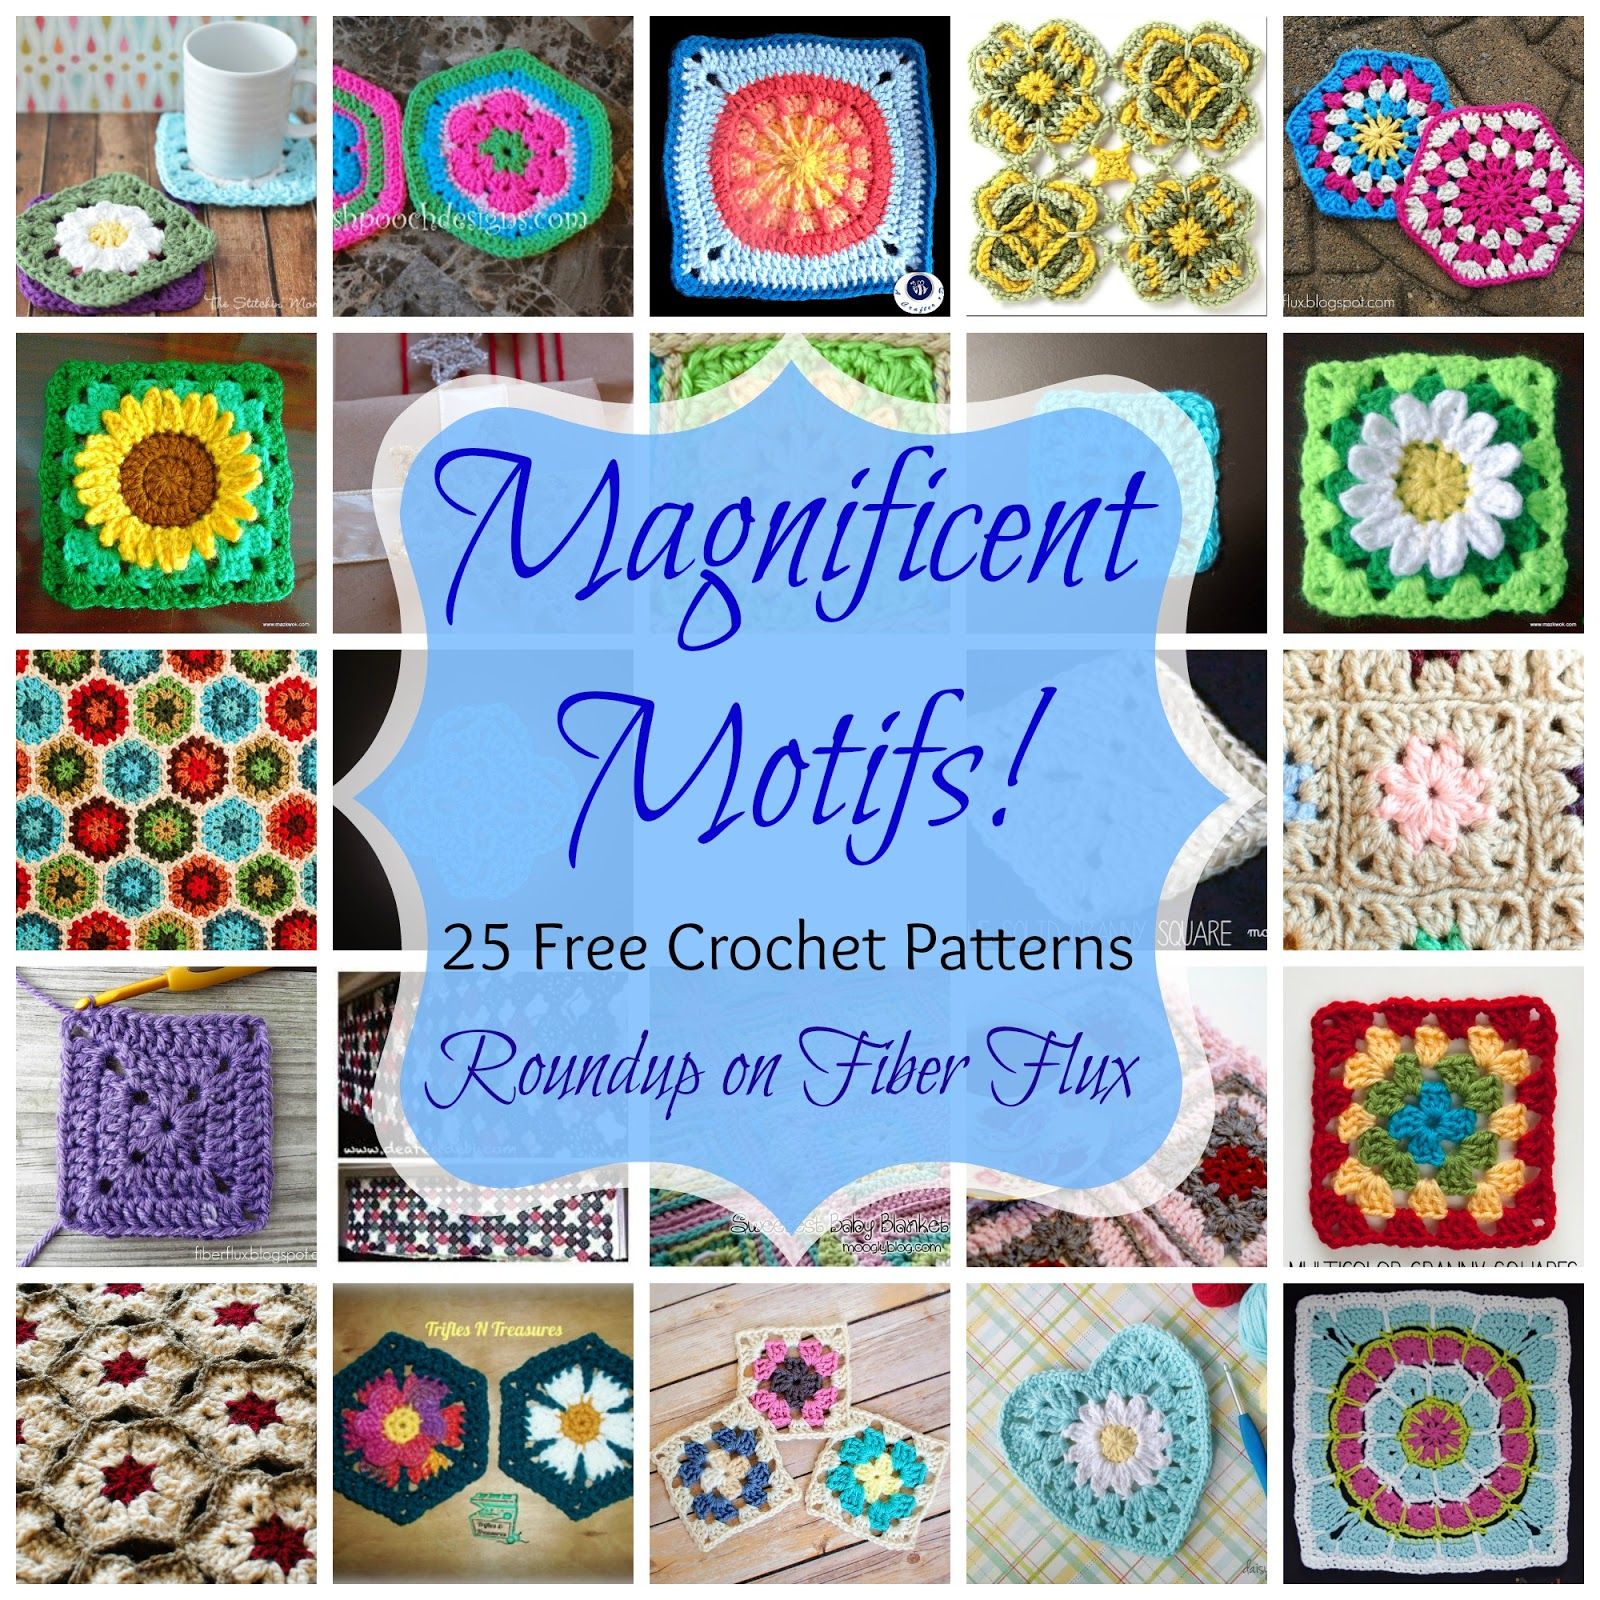 Crochet Patterns For Motifs : Fiber Flux: Magnificent Motifs! 25 Free Crochet Patterns